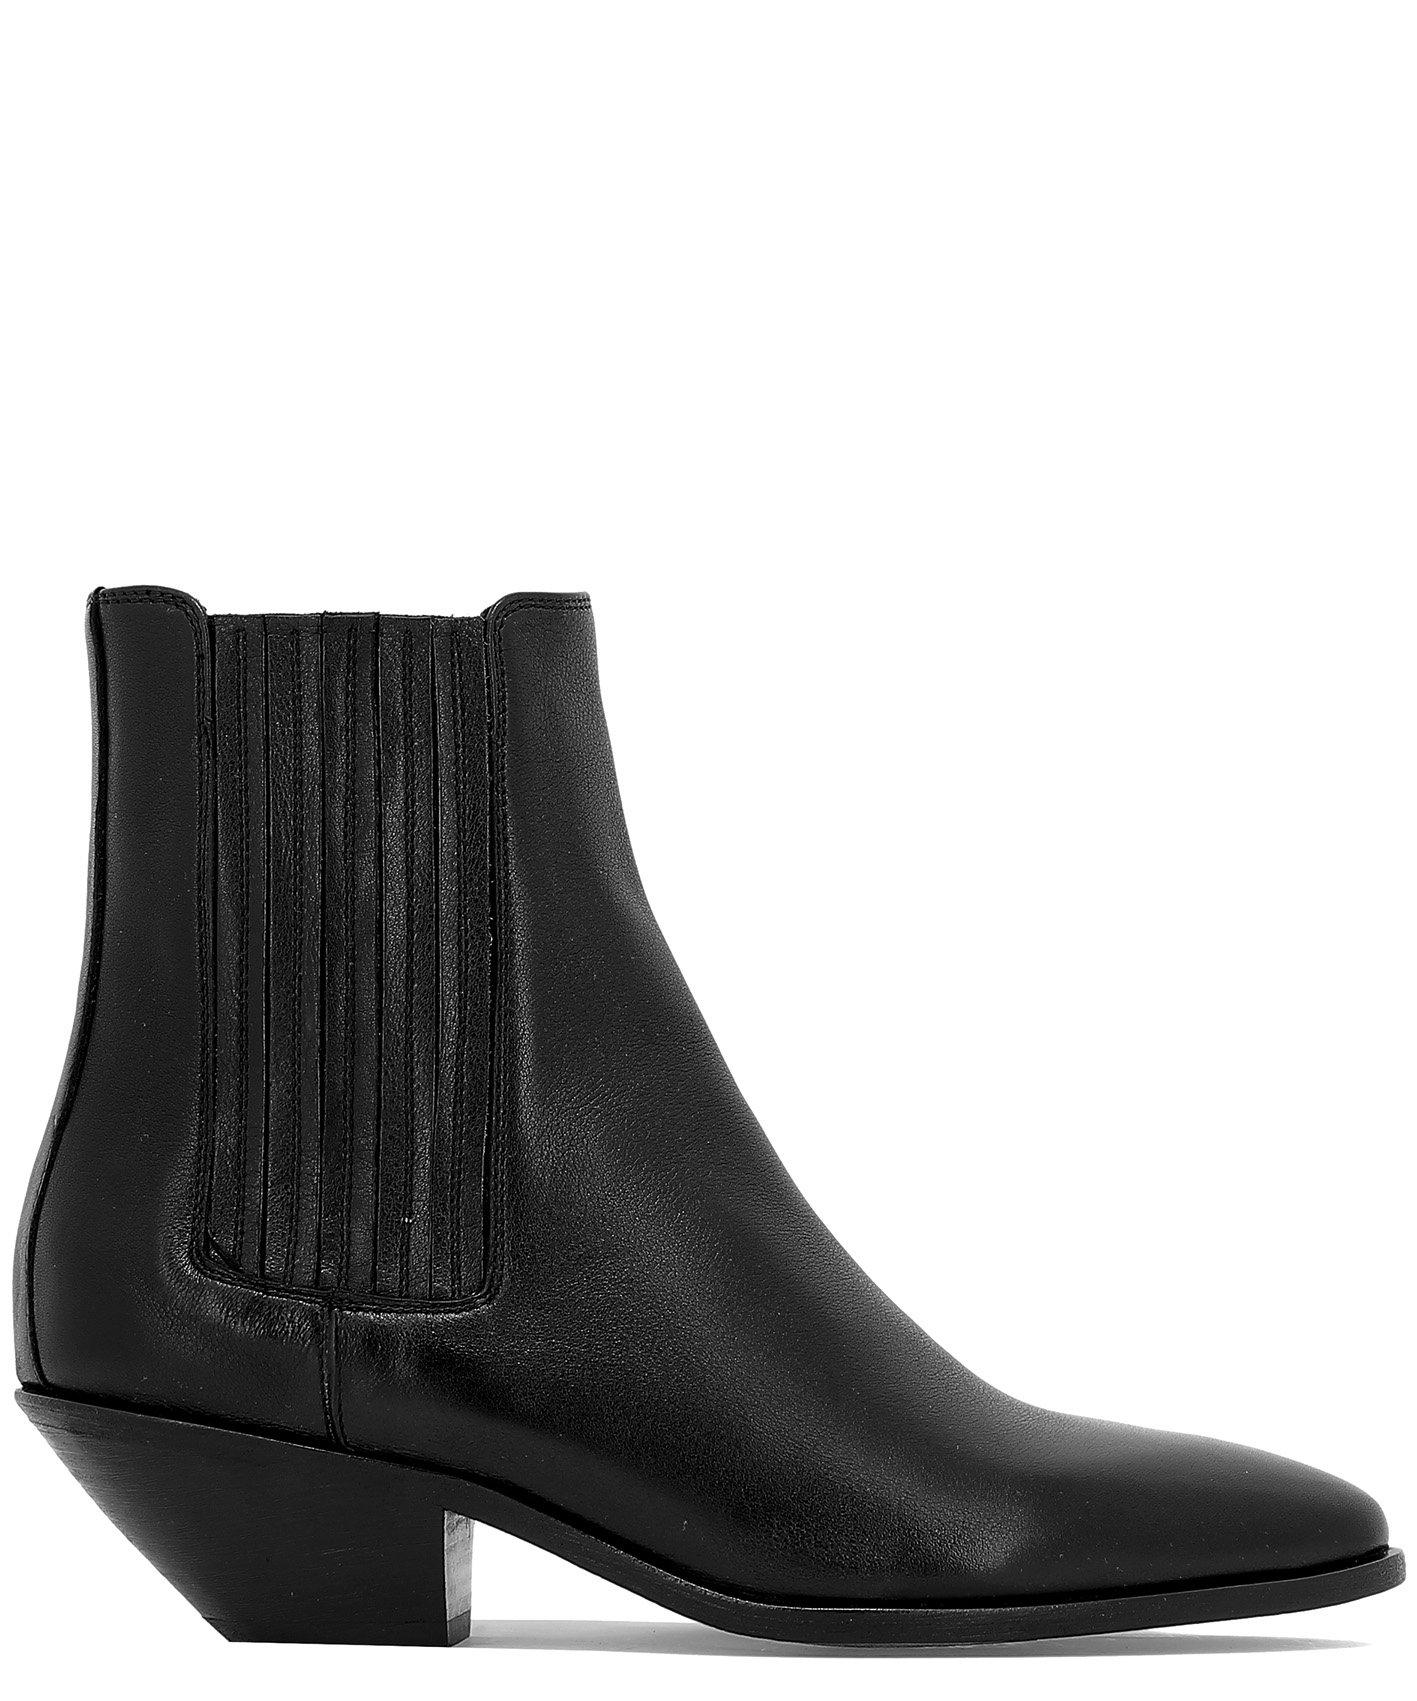 909973478b3 Lyst - Saint Laurent Heeled Chelsea Boots in Black - Save 23%